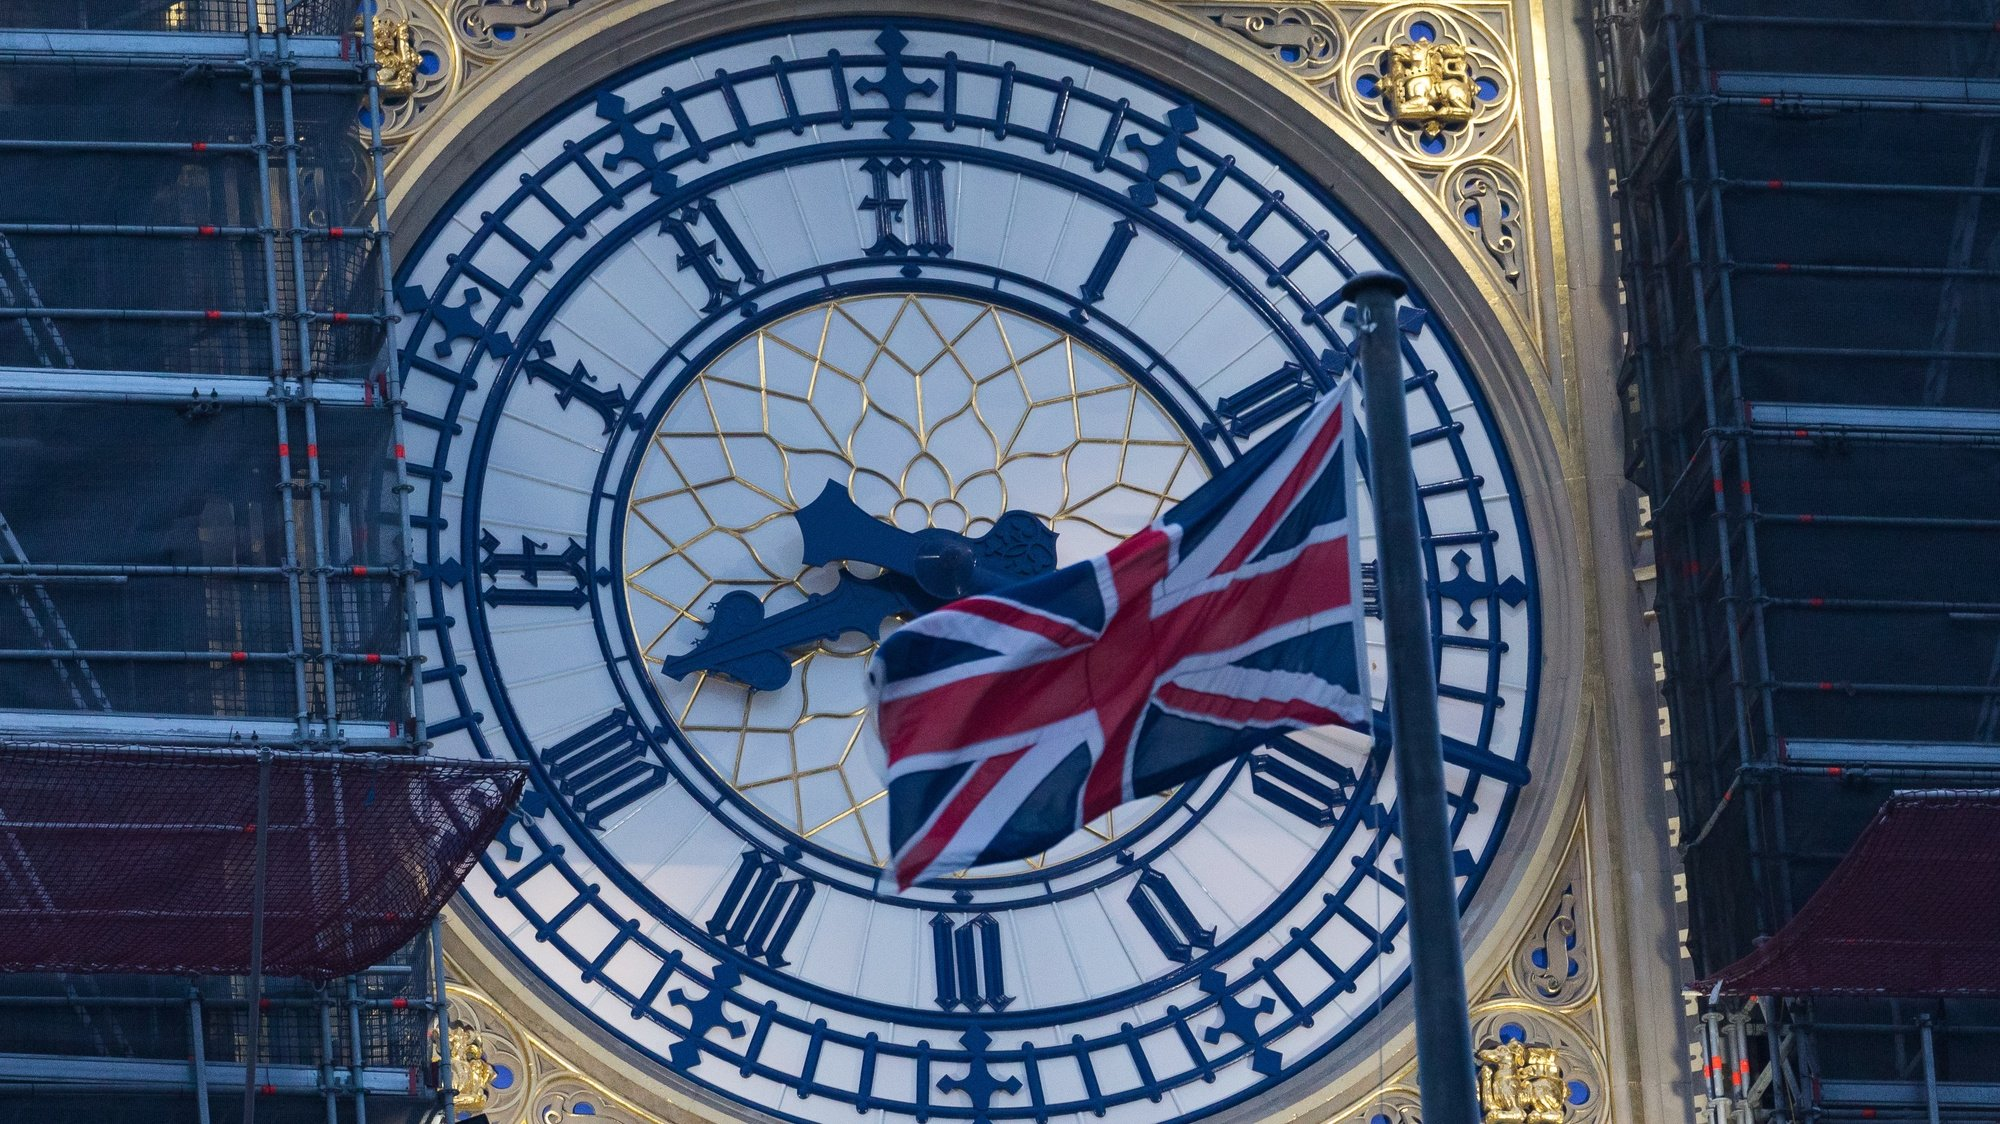 epa08913909 Big Ben clock face with a Union Jack flag seen at dawn in Westminster, London, Britain, 01 January 2021. Britain left the European Union at 11pm on 31 December 2020.  EPA/VICKIE FLORES